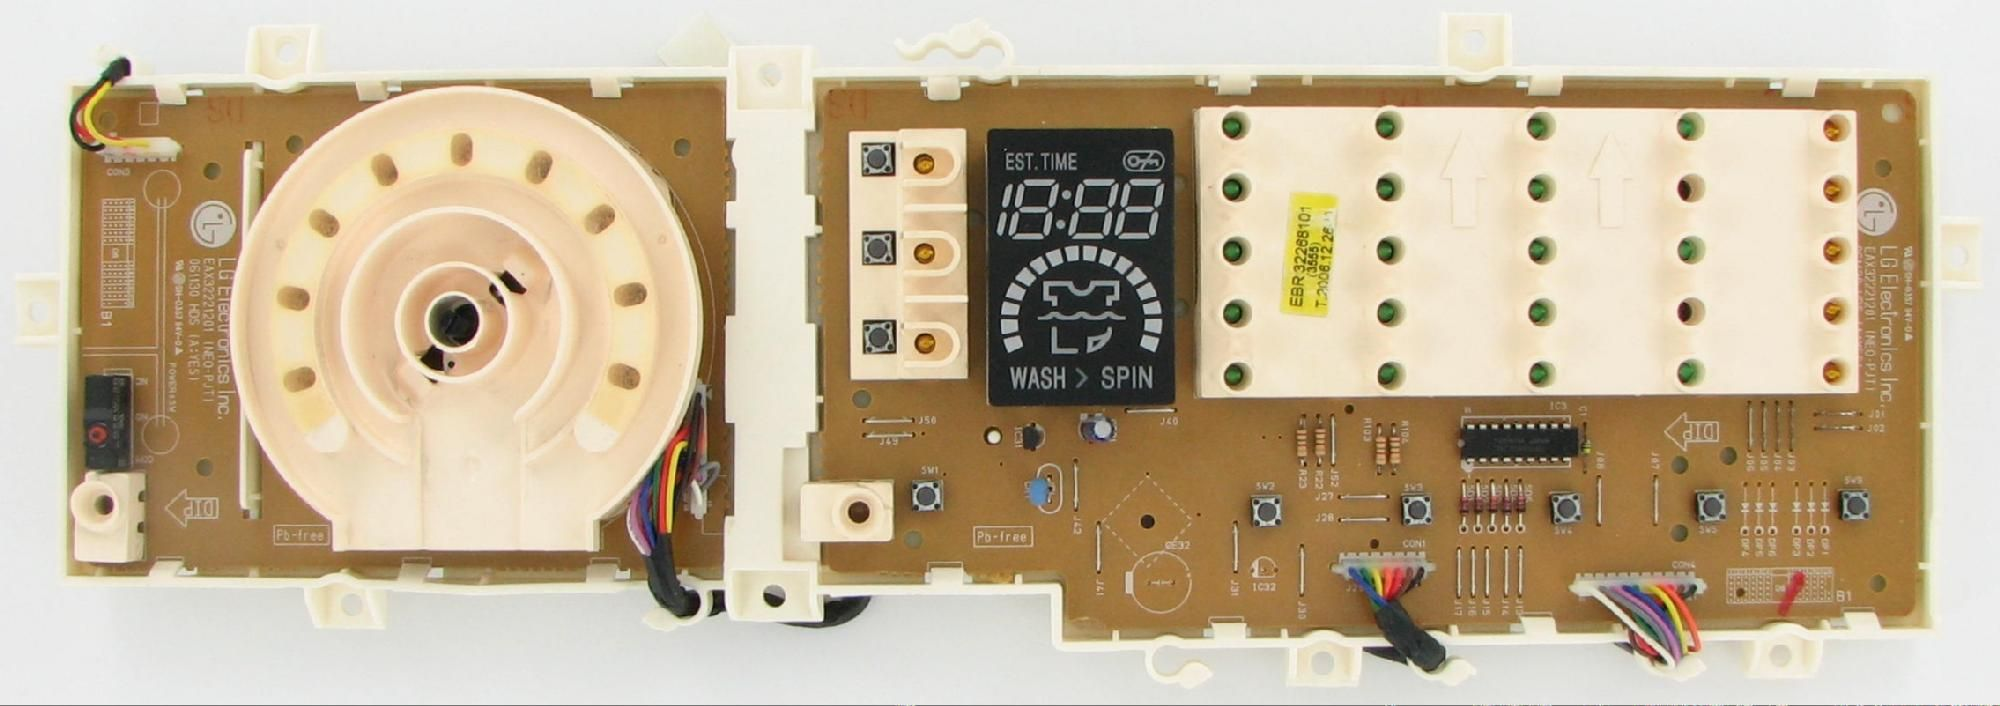 #LG #EBR32268101 Washer Electronic Control Board